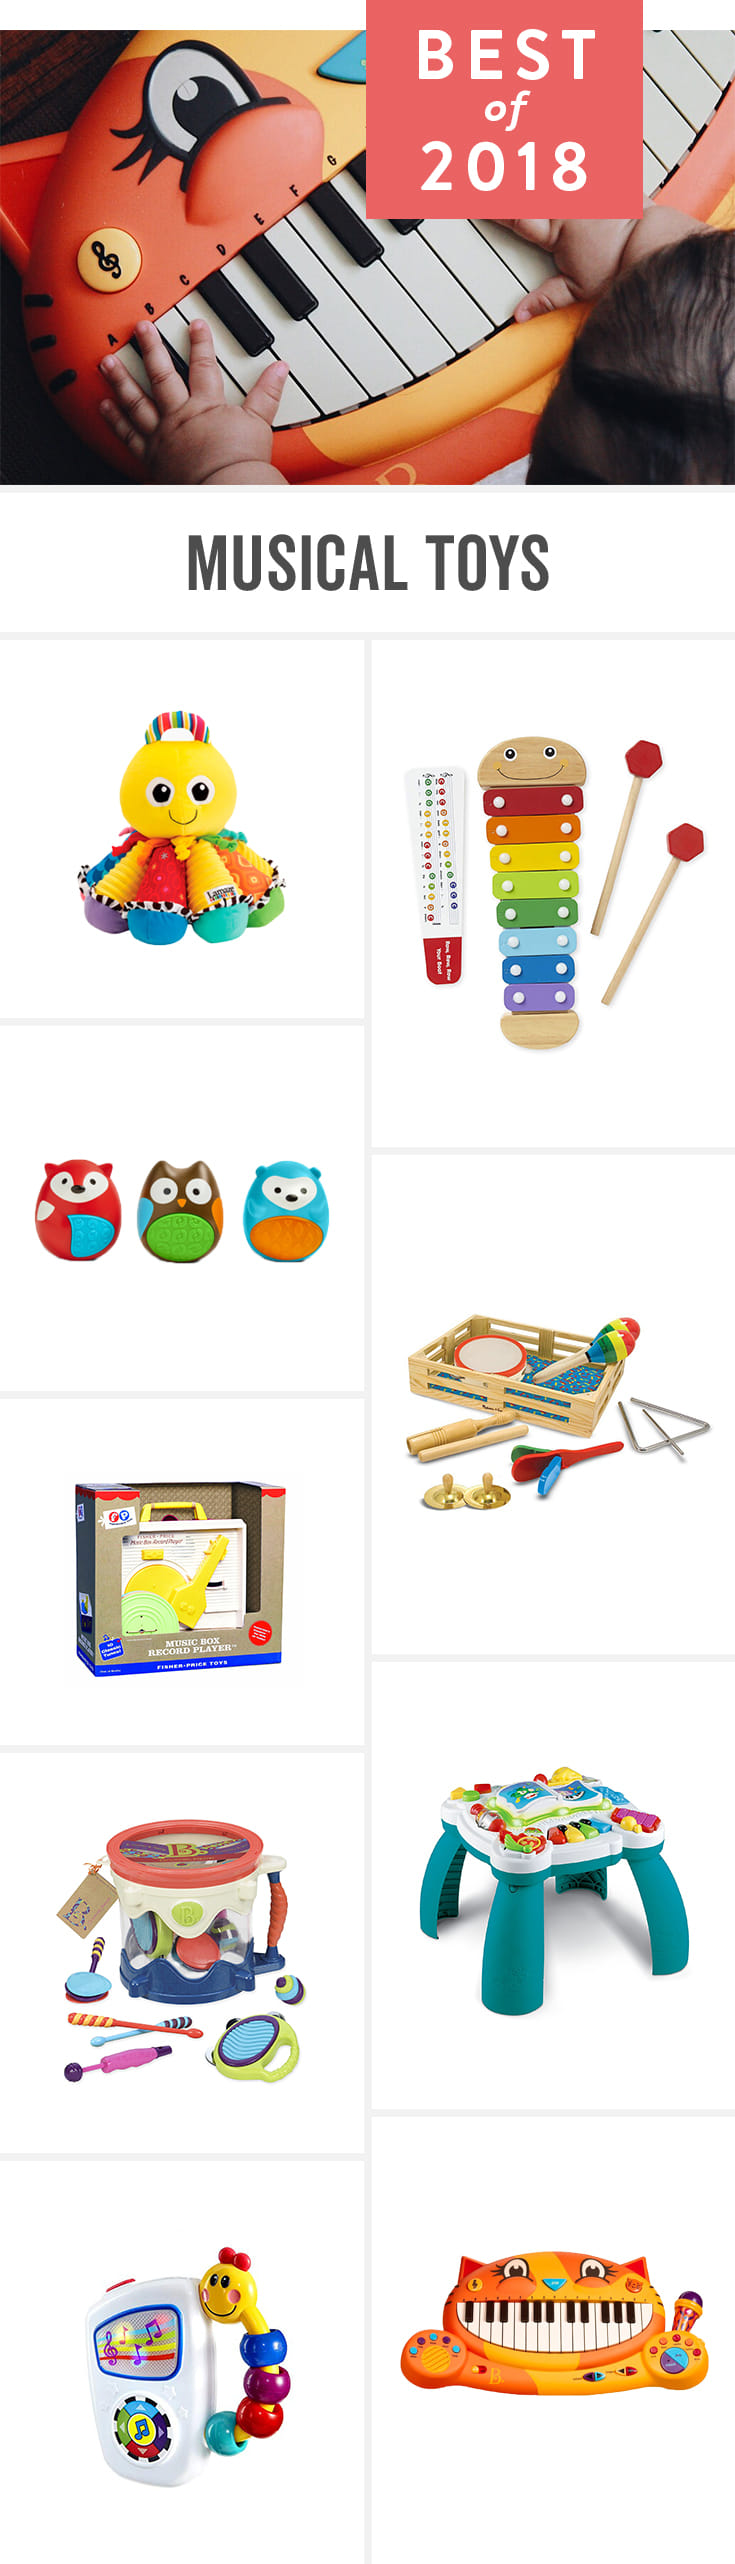 Most babies and toddlers love music. These fun toys let them get their groove on.